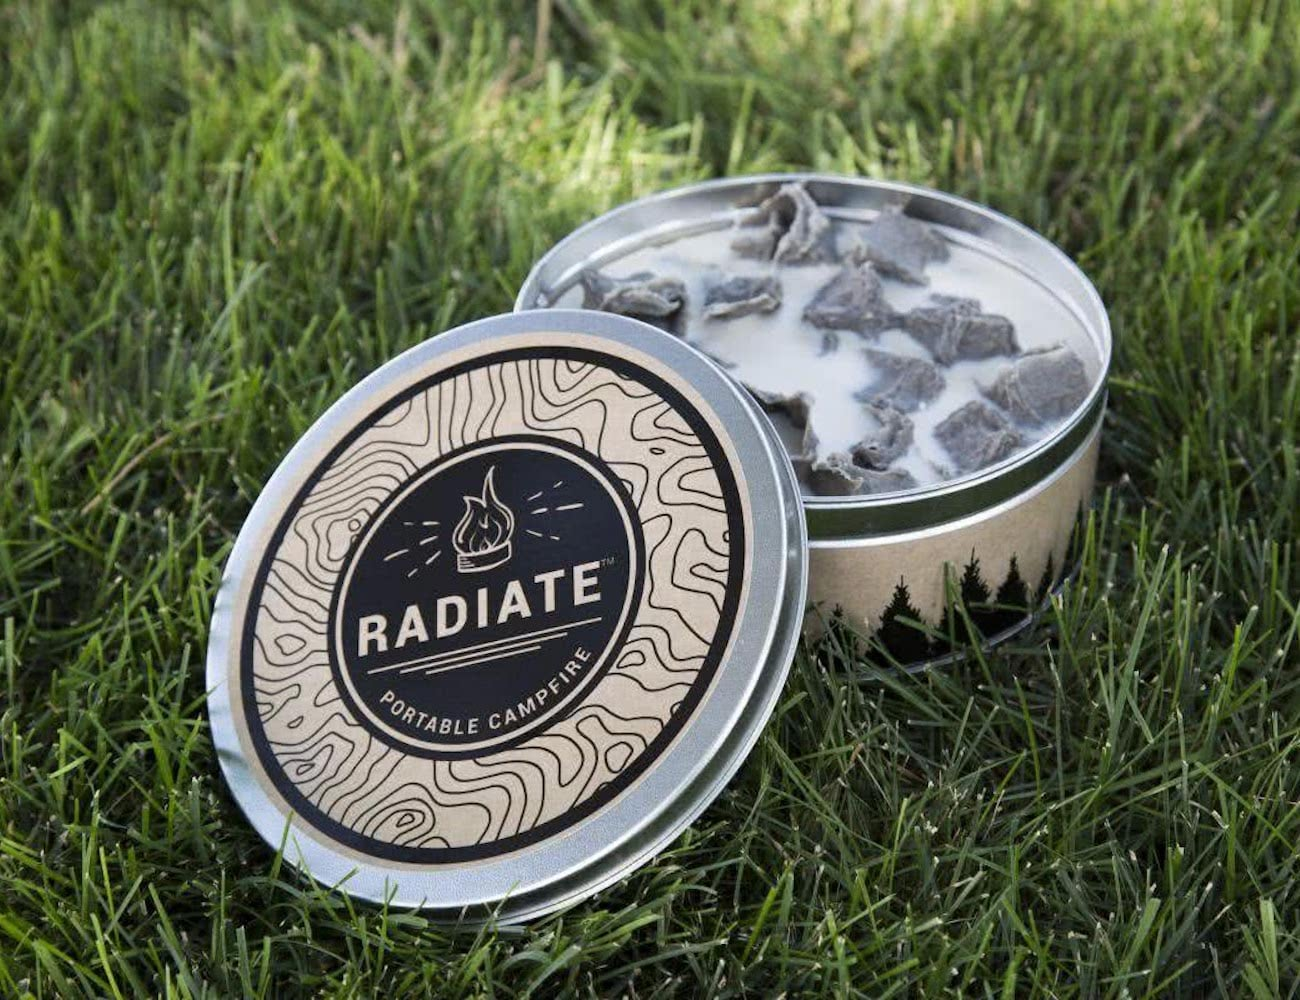 Radiate Reusable Waterproof Portable Campfire